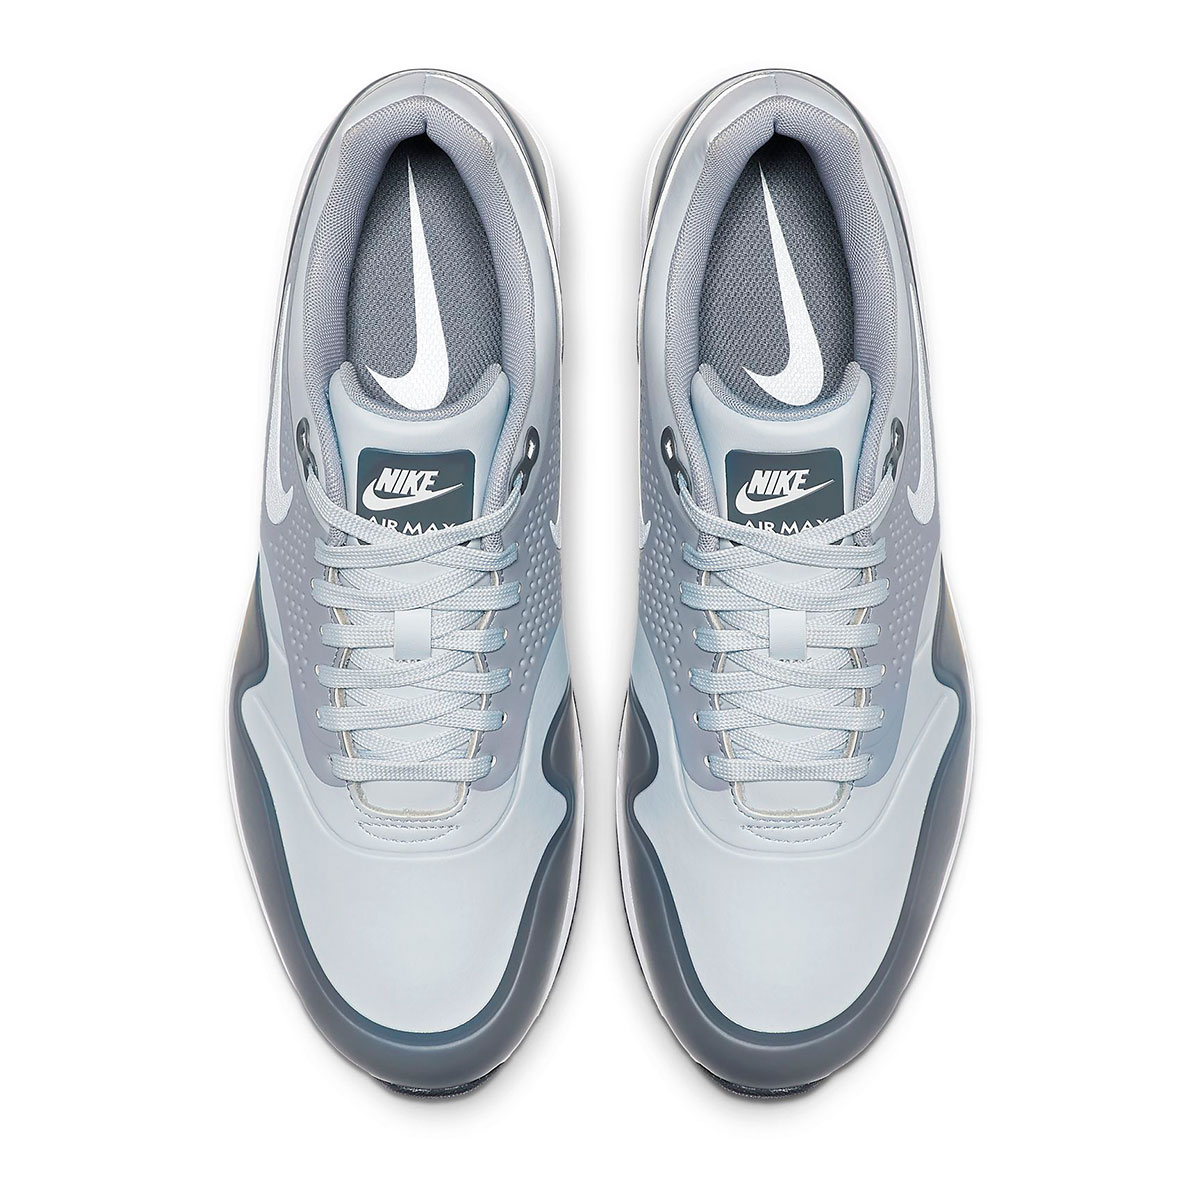 8769050f53 Nike Air Max 1G Shoes from american golf